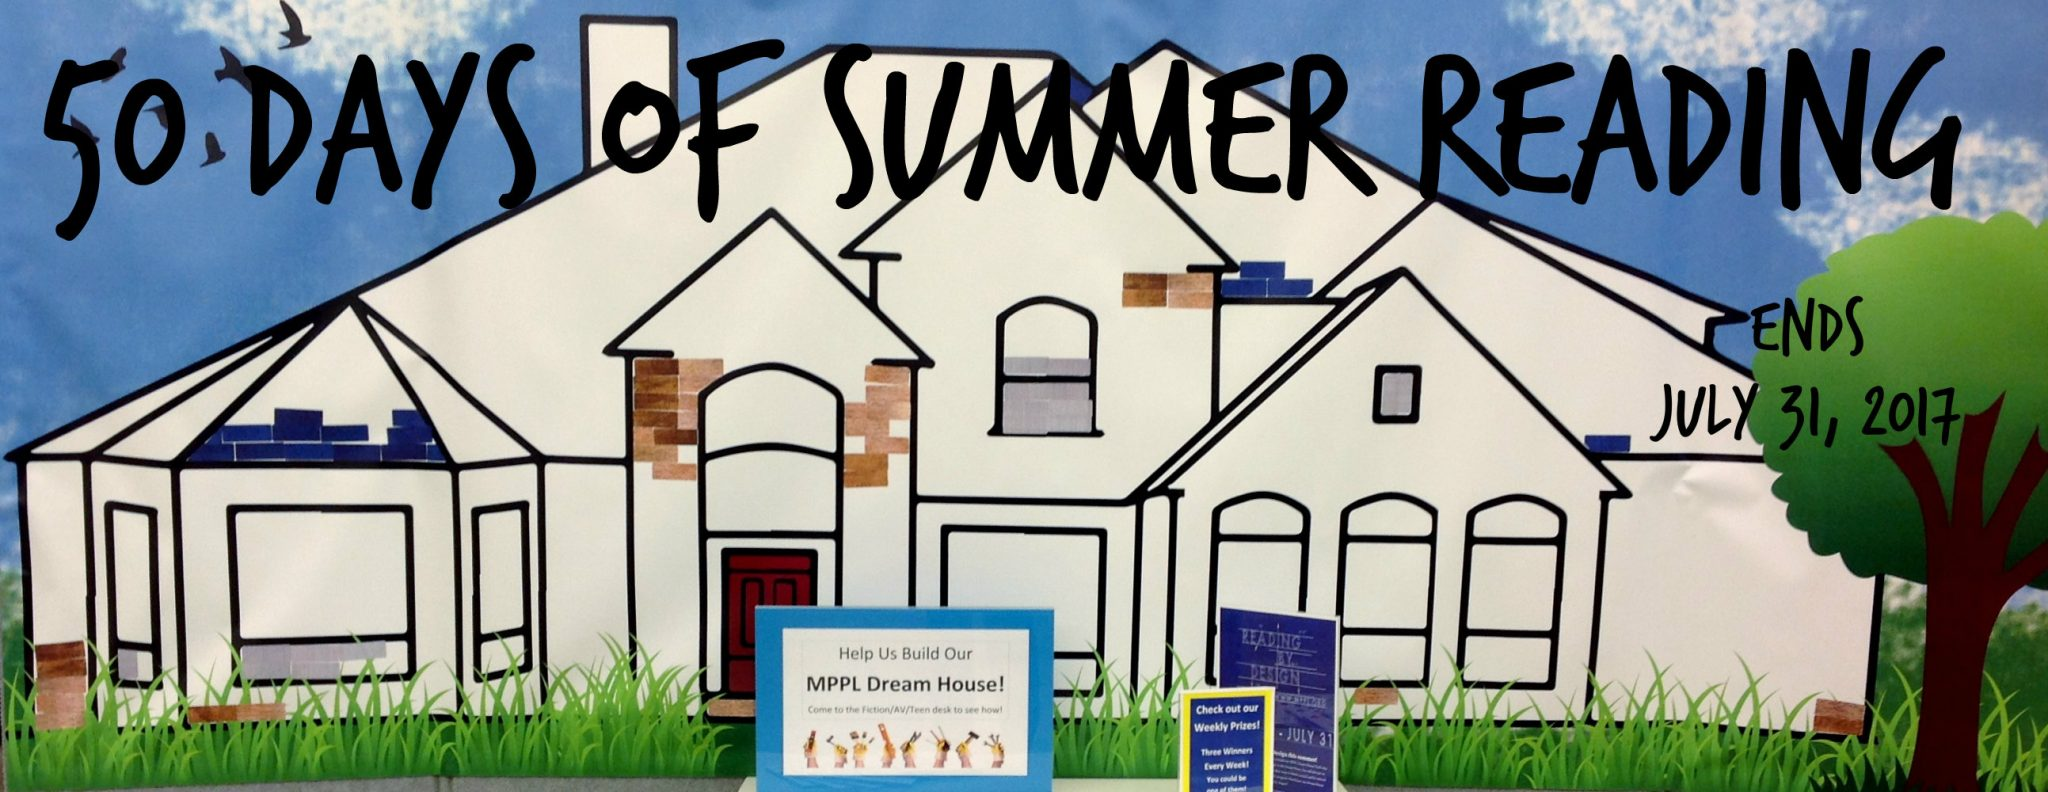 50 Days of Summer Reading Banner